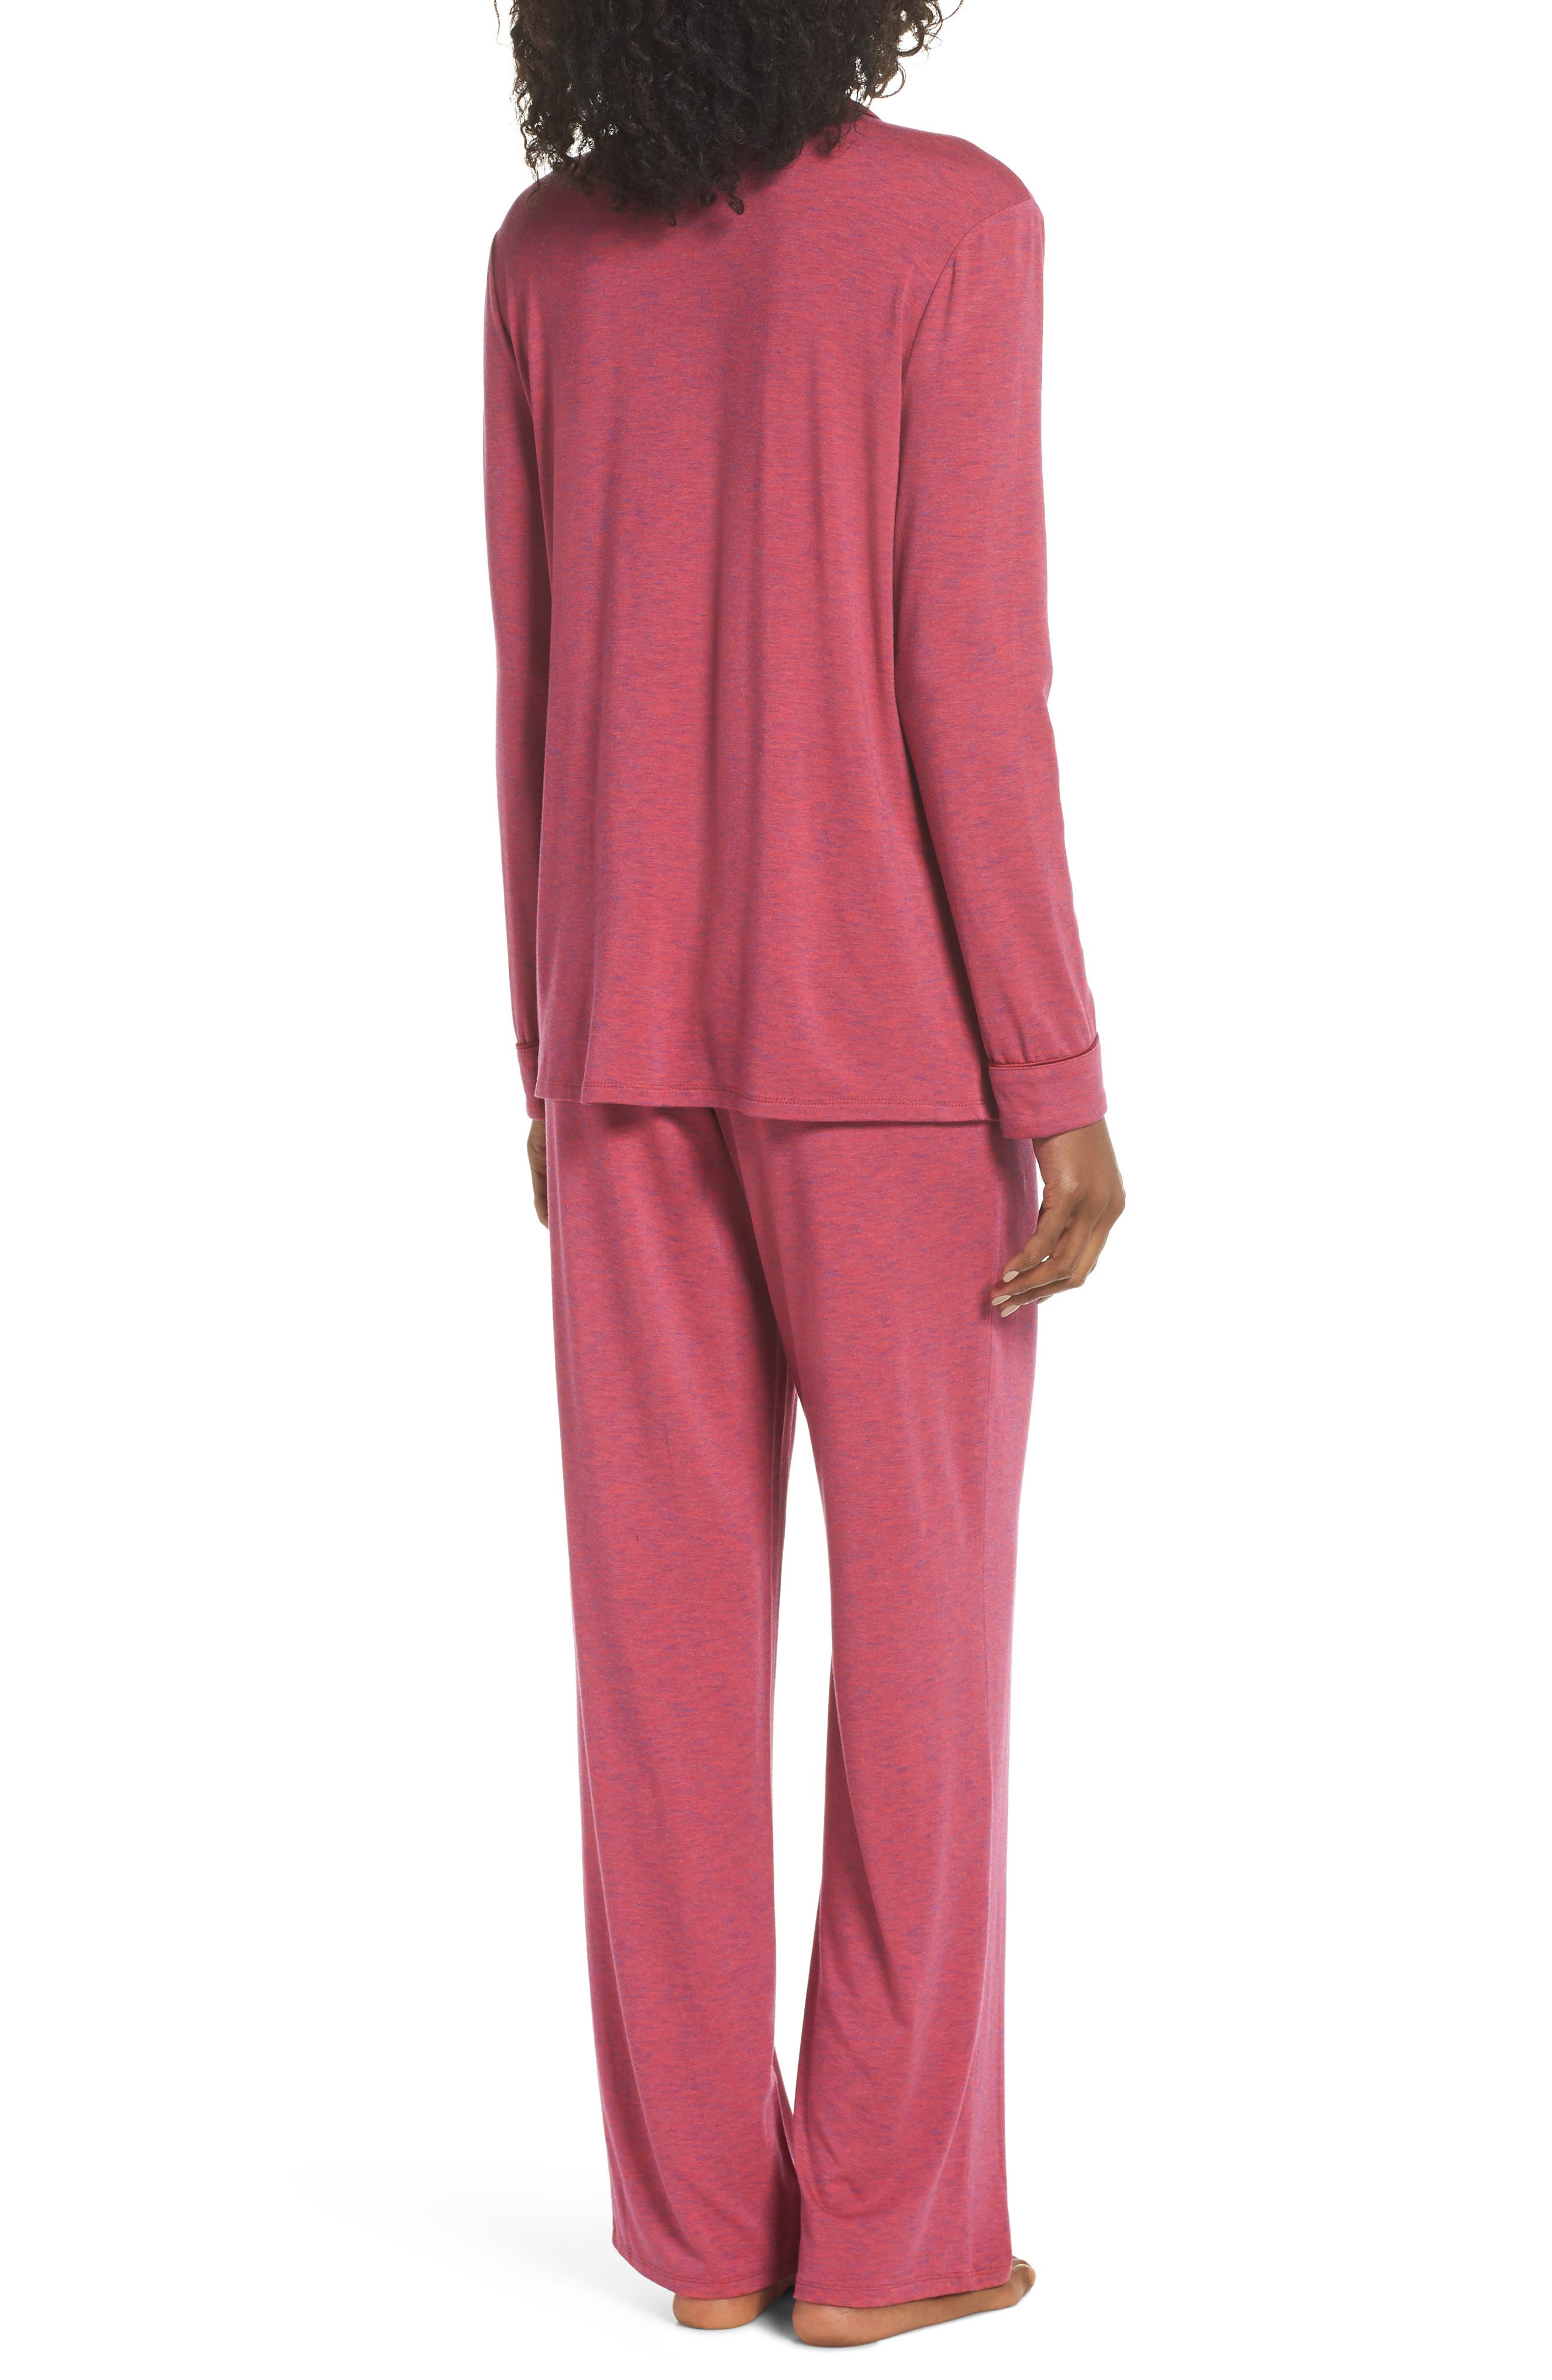 NORDSTROM LINGERIE,                             Moonlight Pajamas,                             Alternate thumbnail 2, color,                             BURGUNDY SPACEDYE